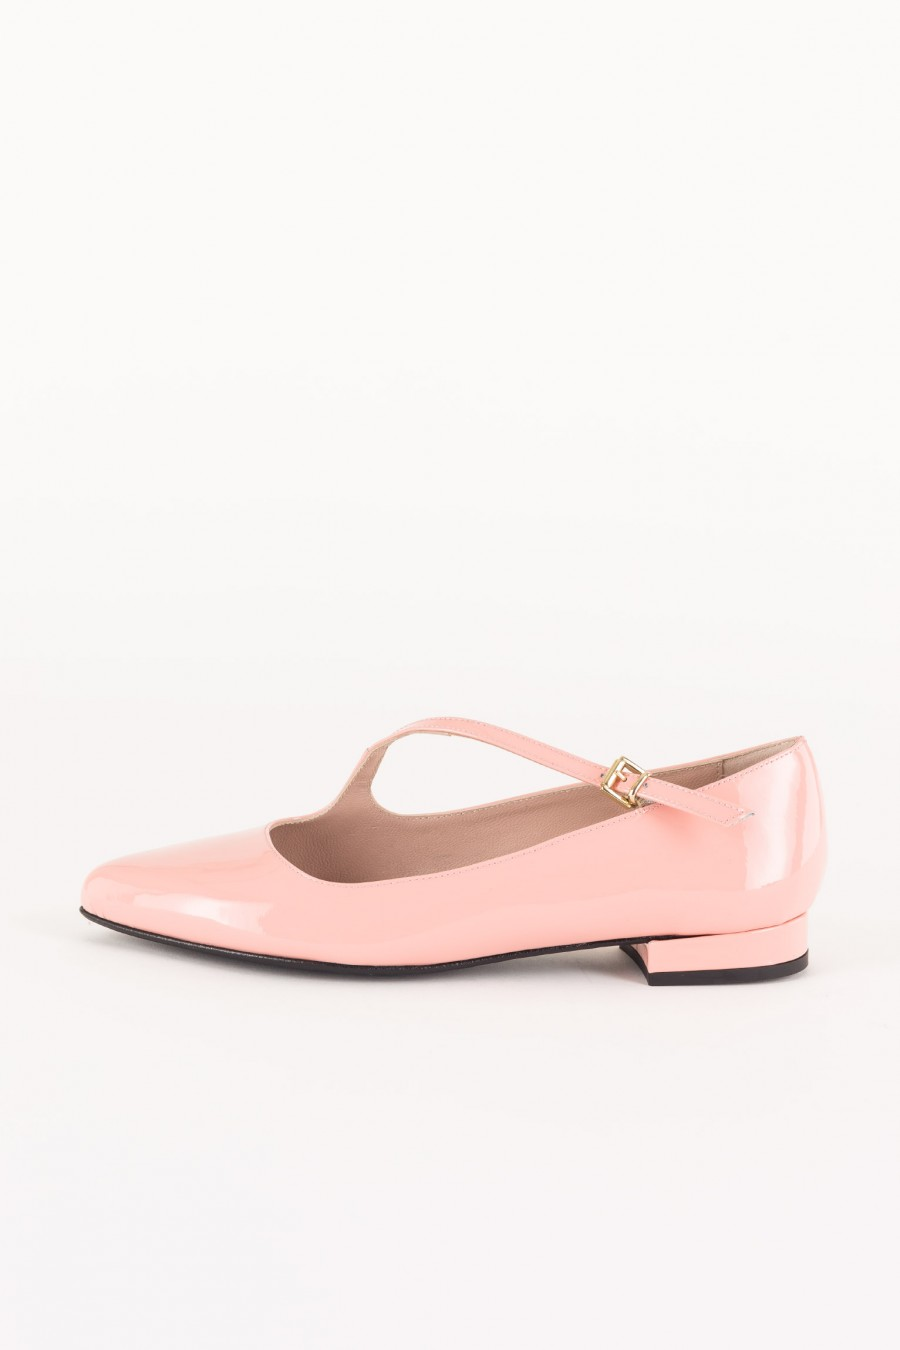 Pink flats with bucle